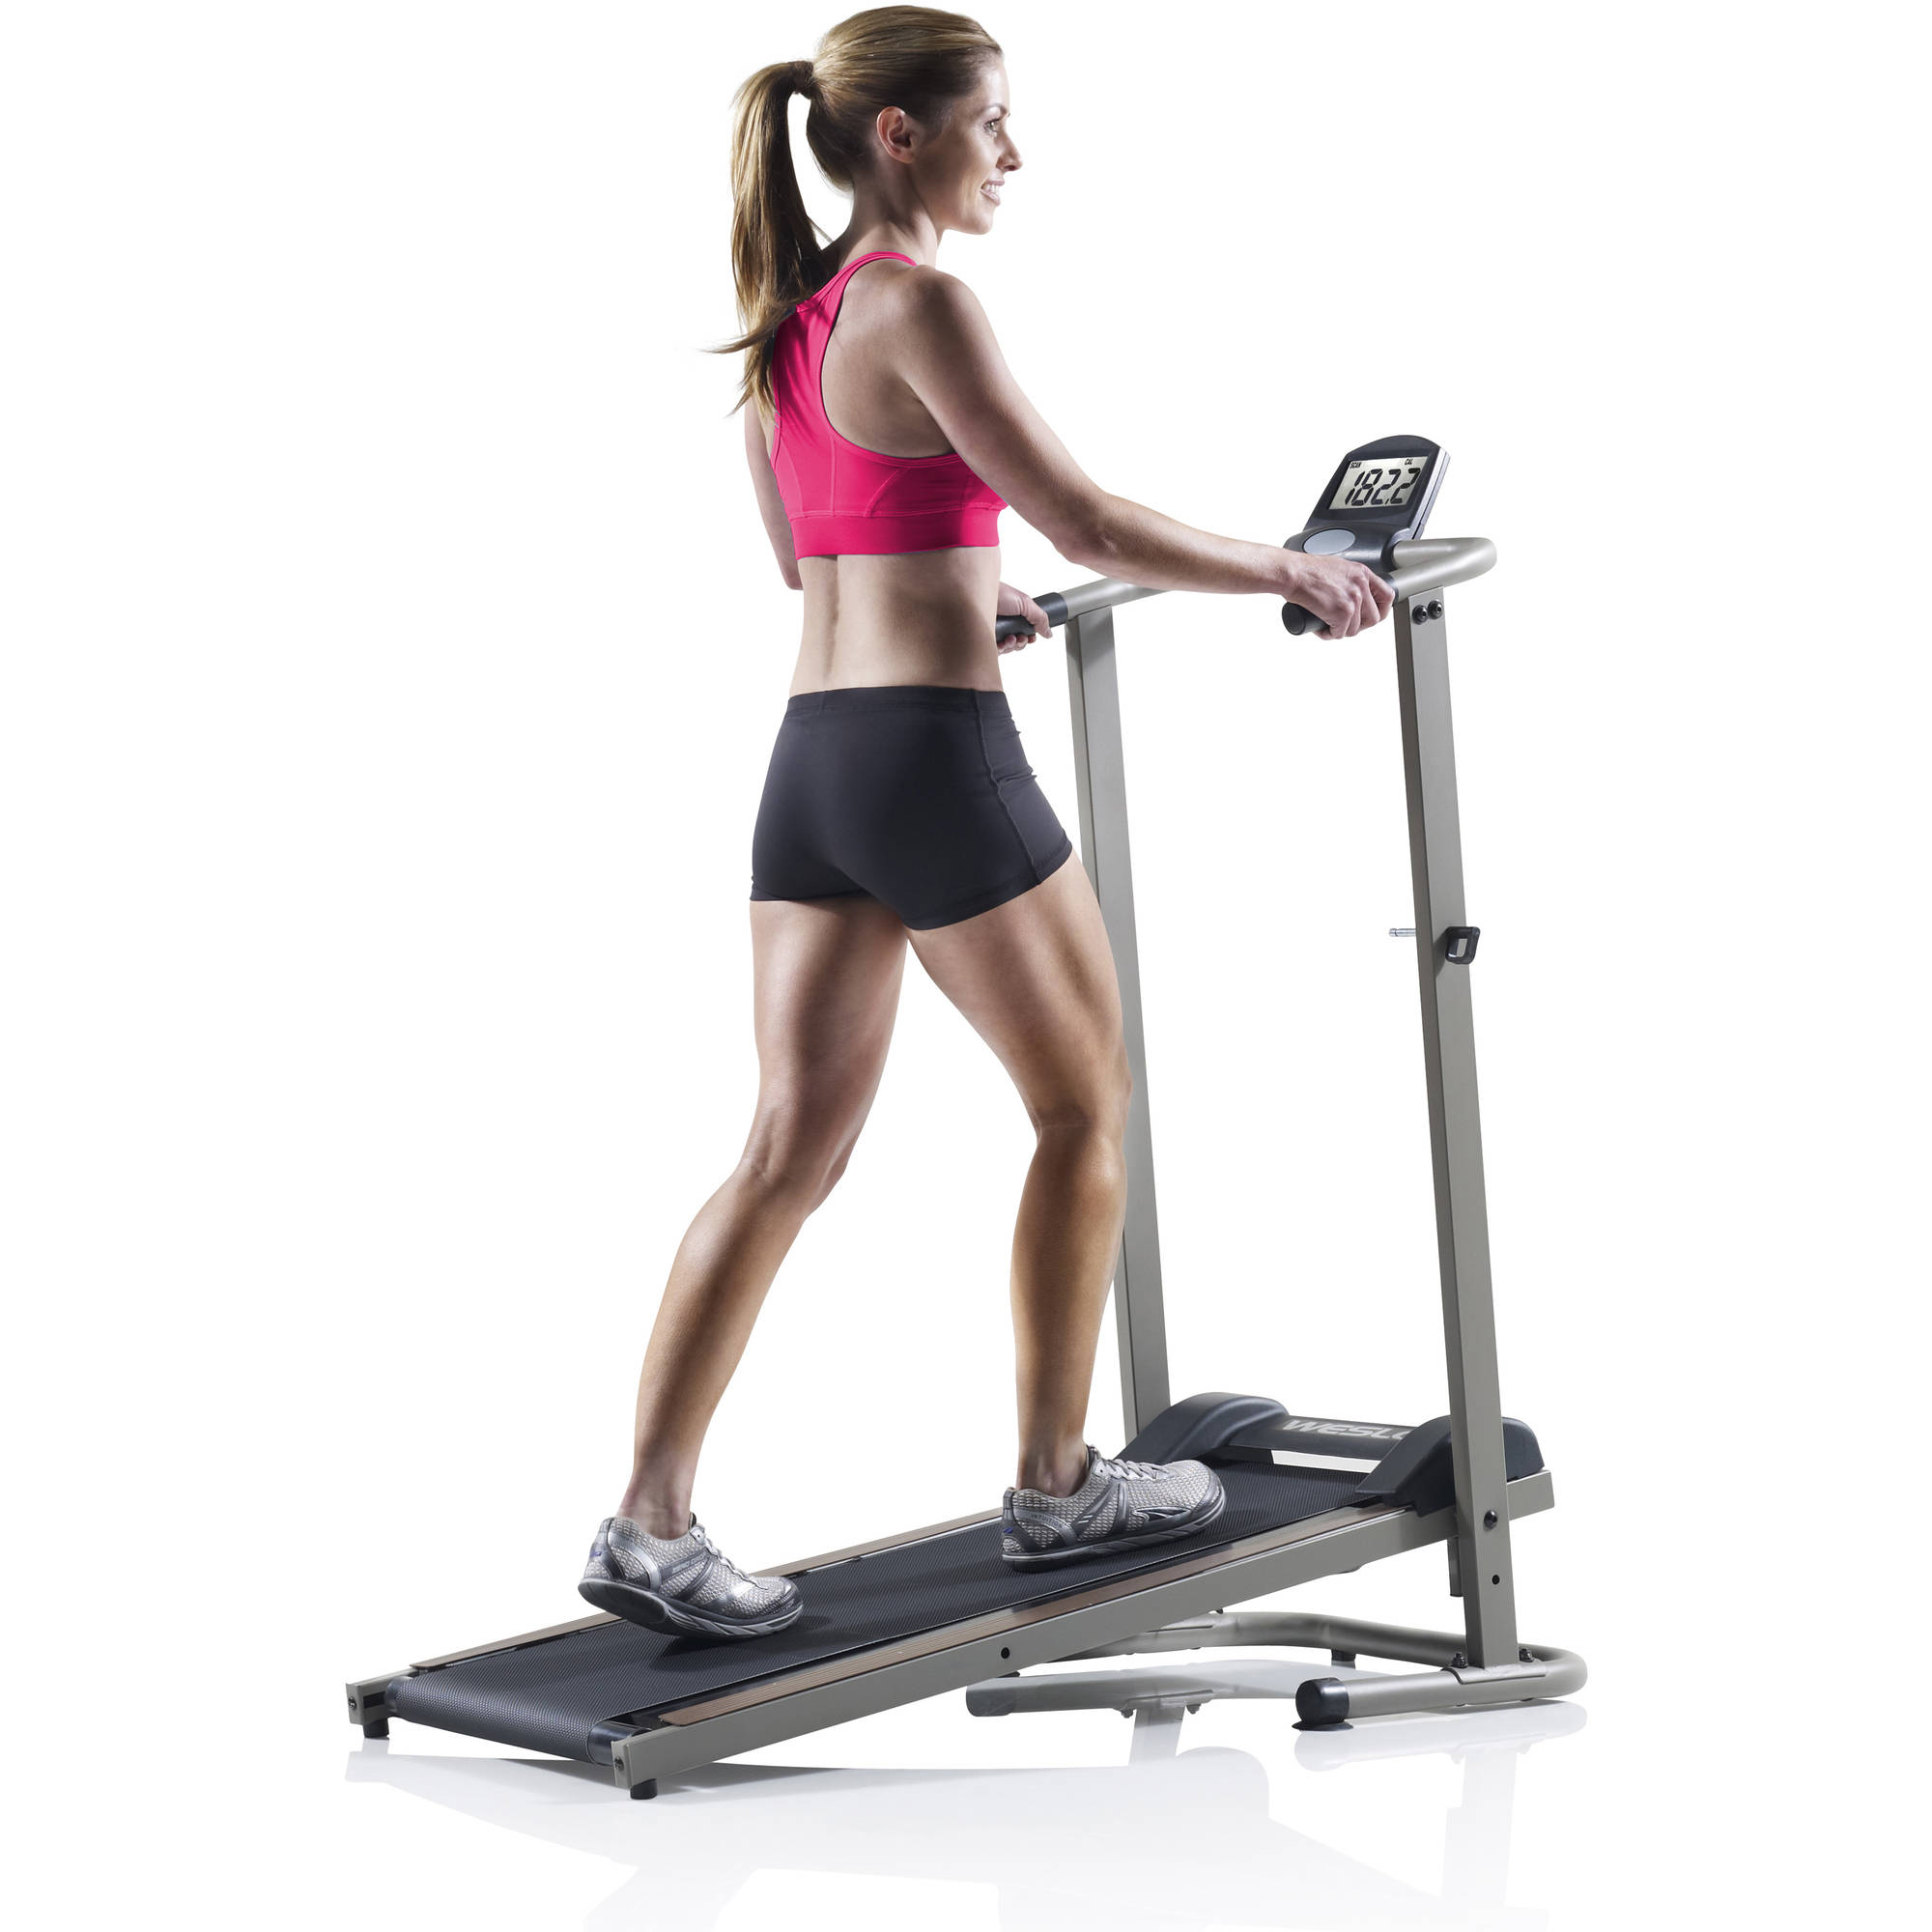 Weslo CardioStride 3.0 Manual Treadmill with Spacesaver Design